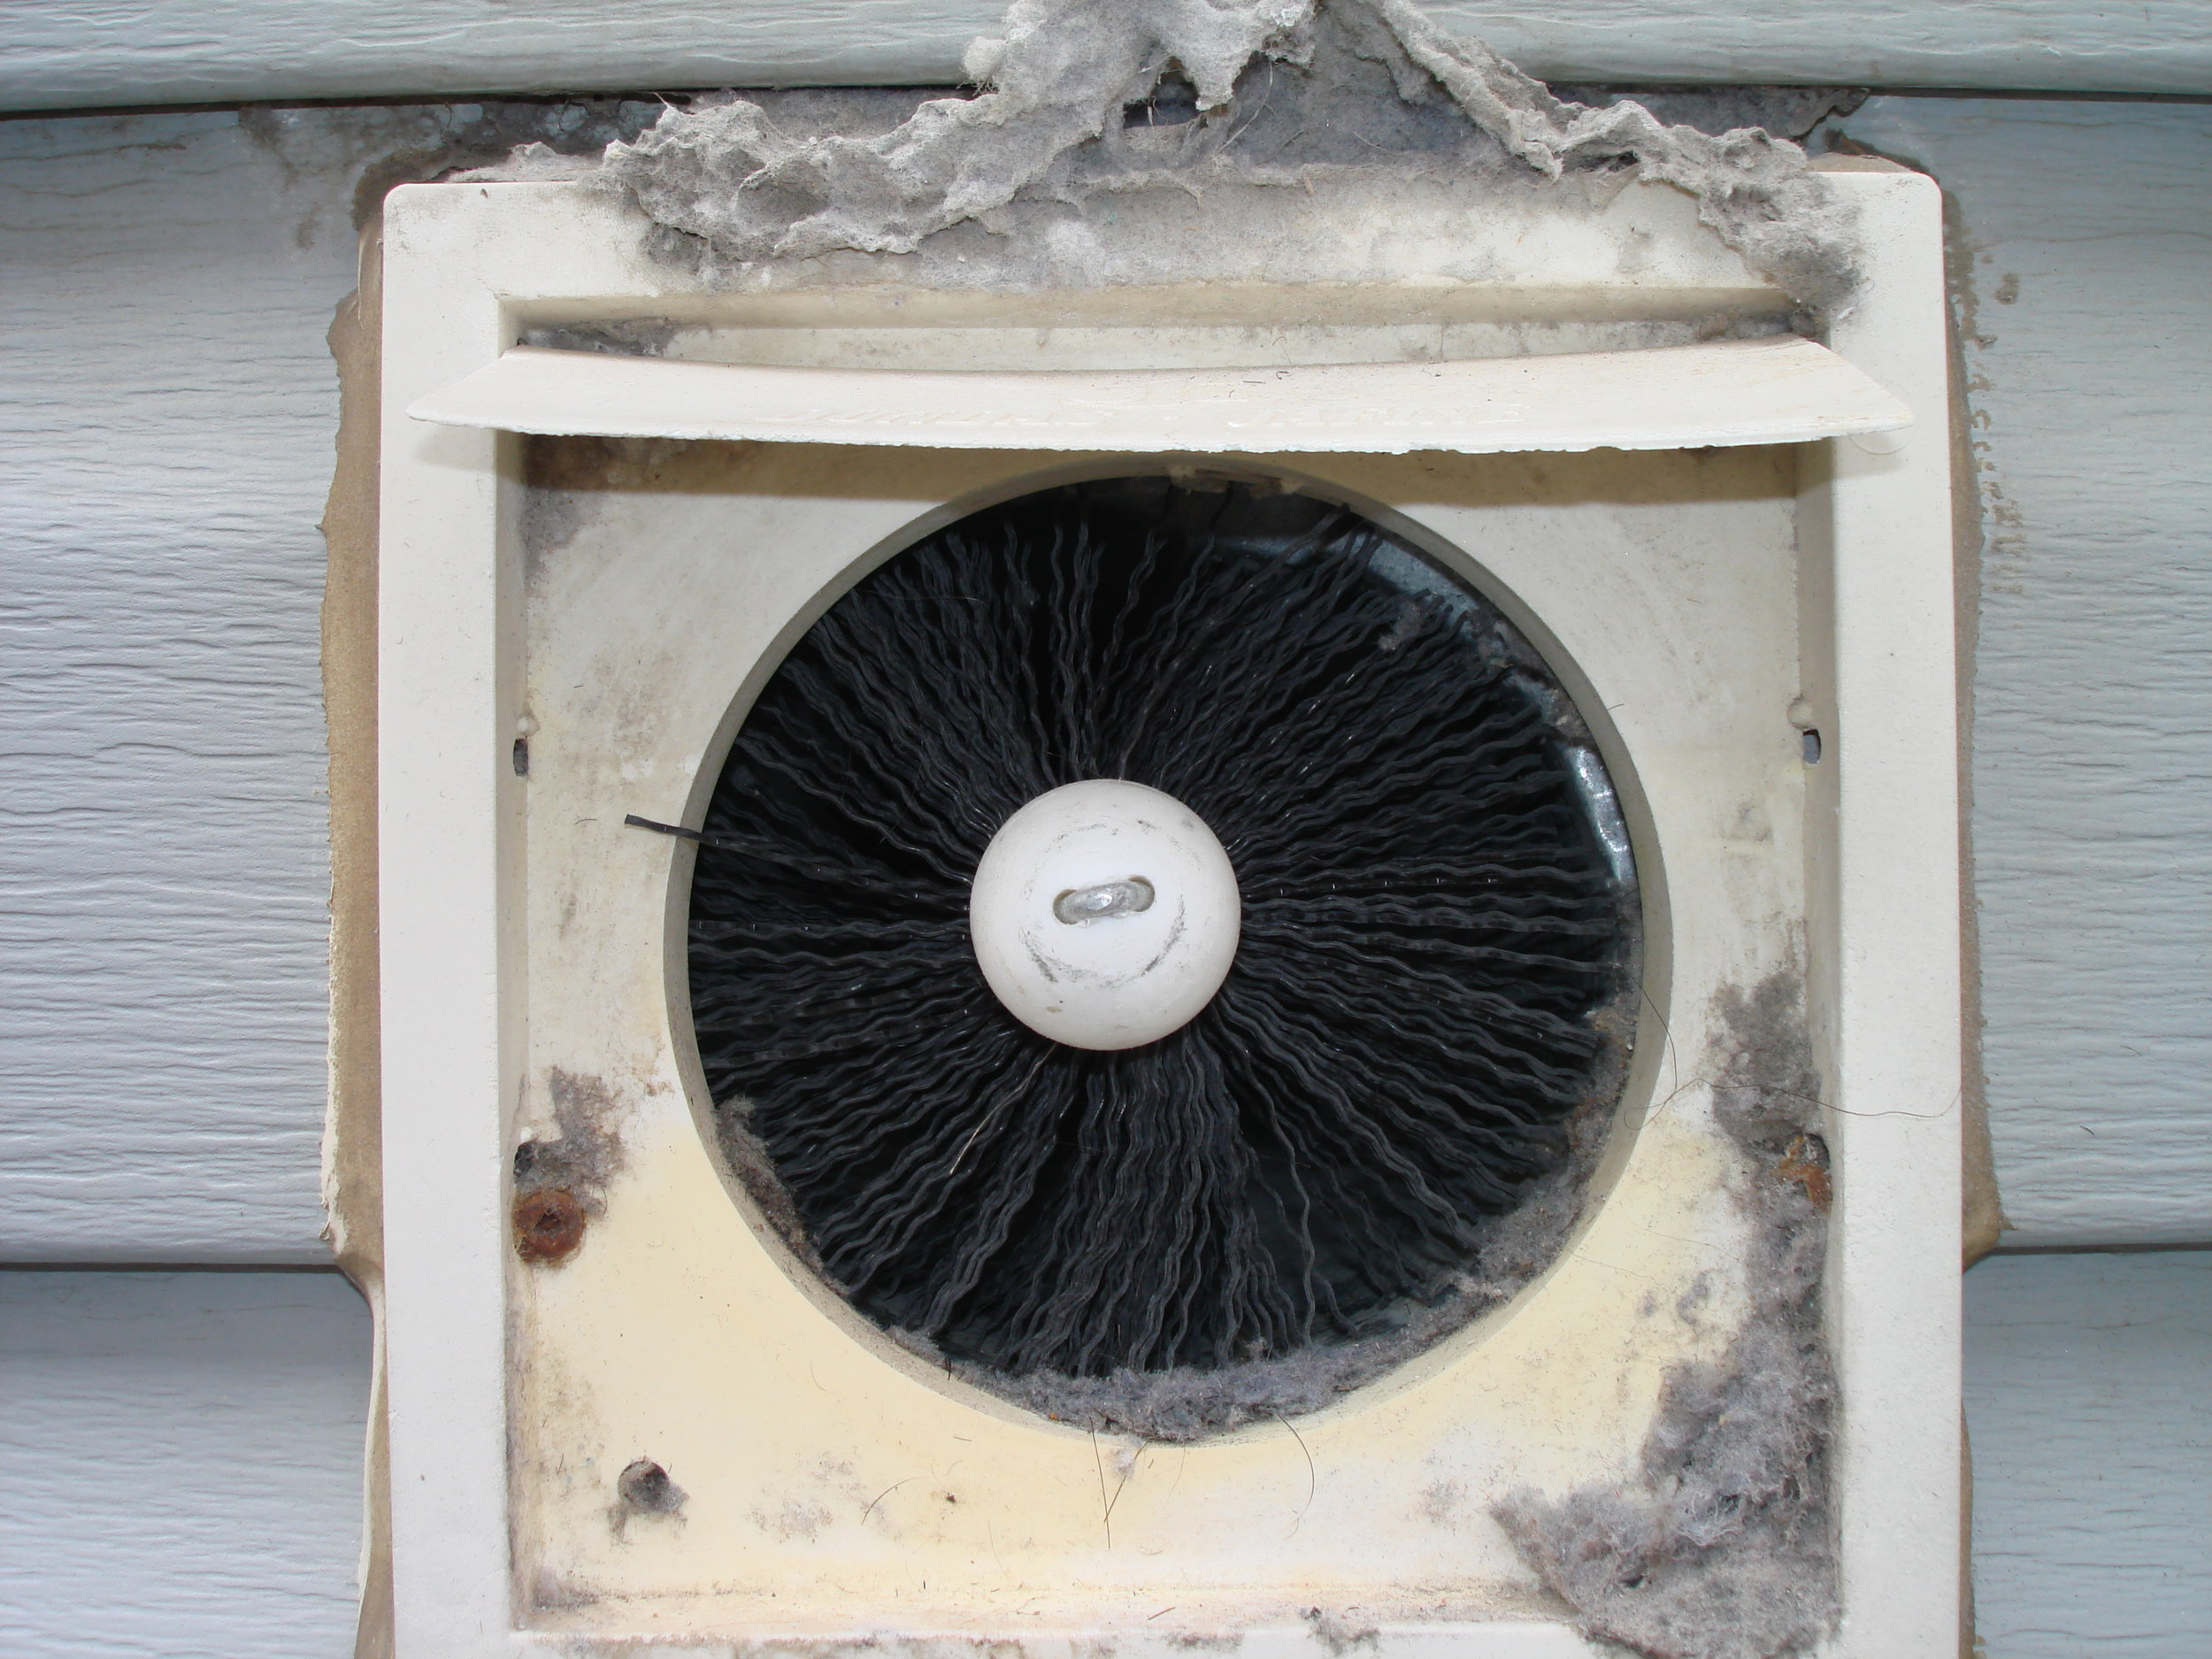 The rotating brush travels the complete length of the vent until it reaches the termination point outside your house.